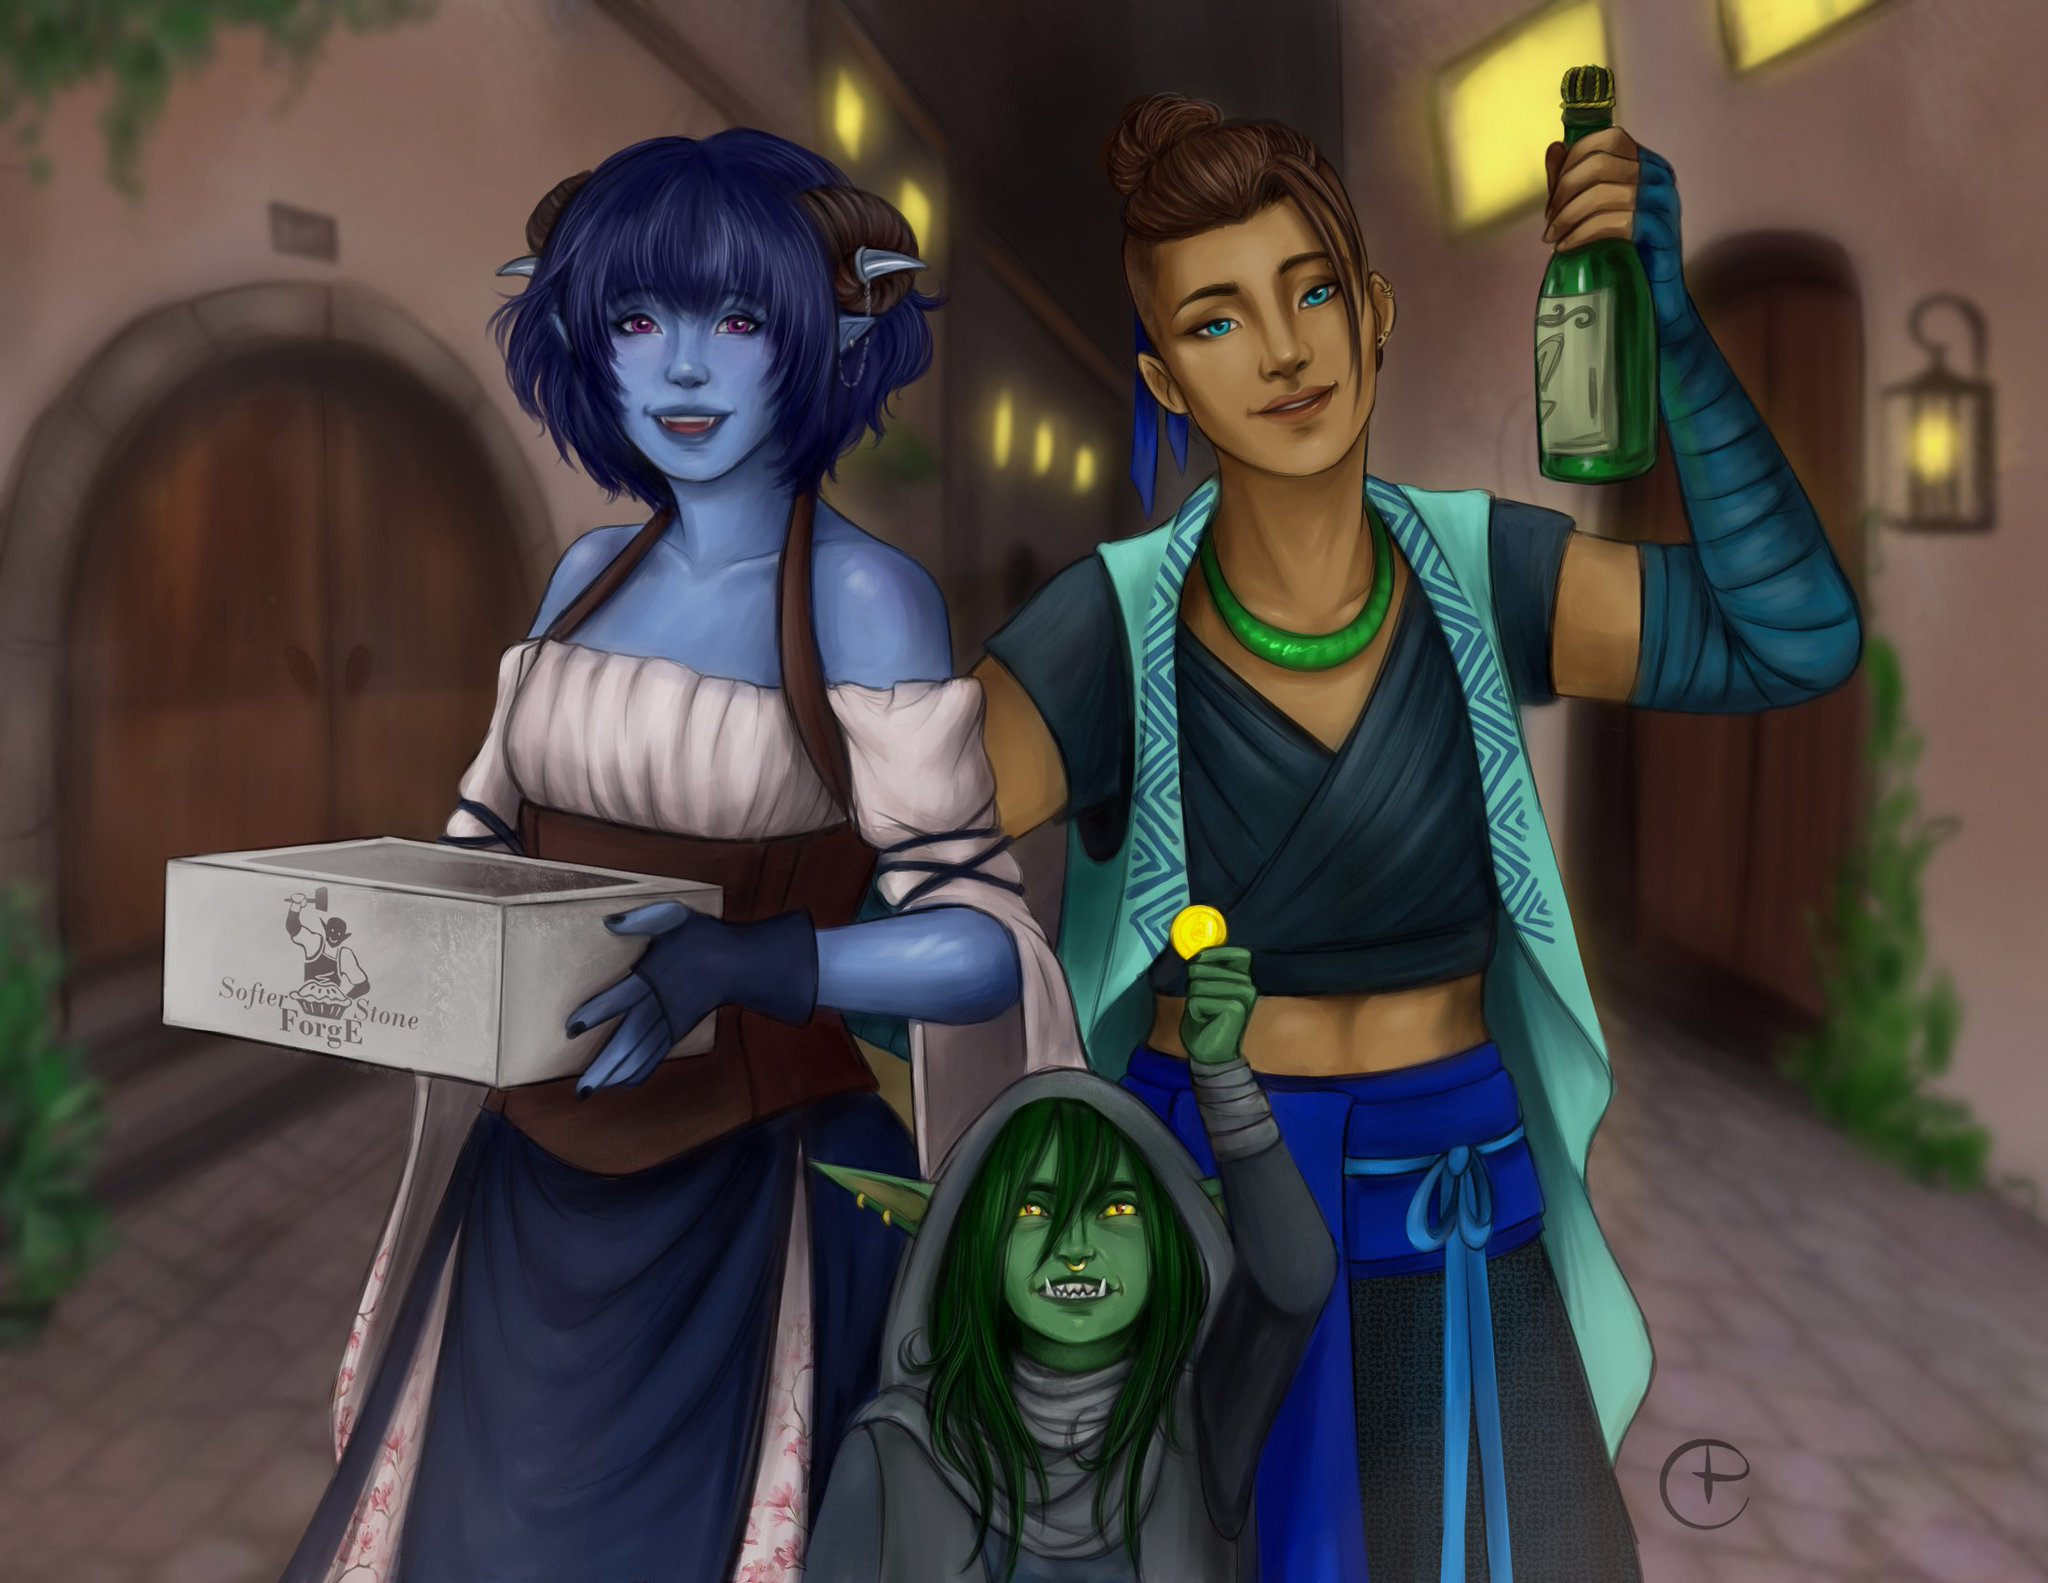 Jester: We brought cupcakes! Nott: and money Beau: and booze! Ep: 73 (about 3hrs 48min in) i think this interaction says a lot about everyone's priorities #CriticalRole #criticalrolefanart https://t.co/9GRjkUOsFT